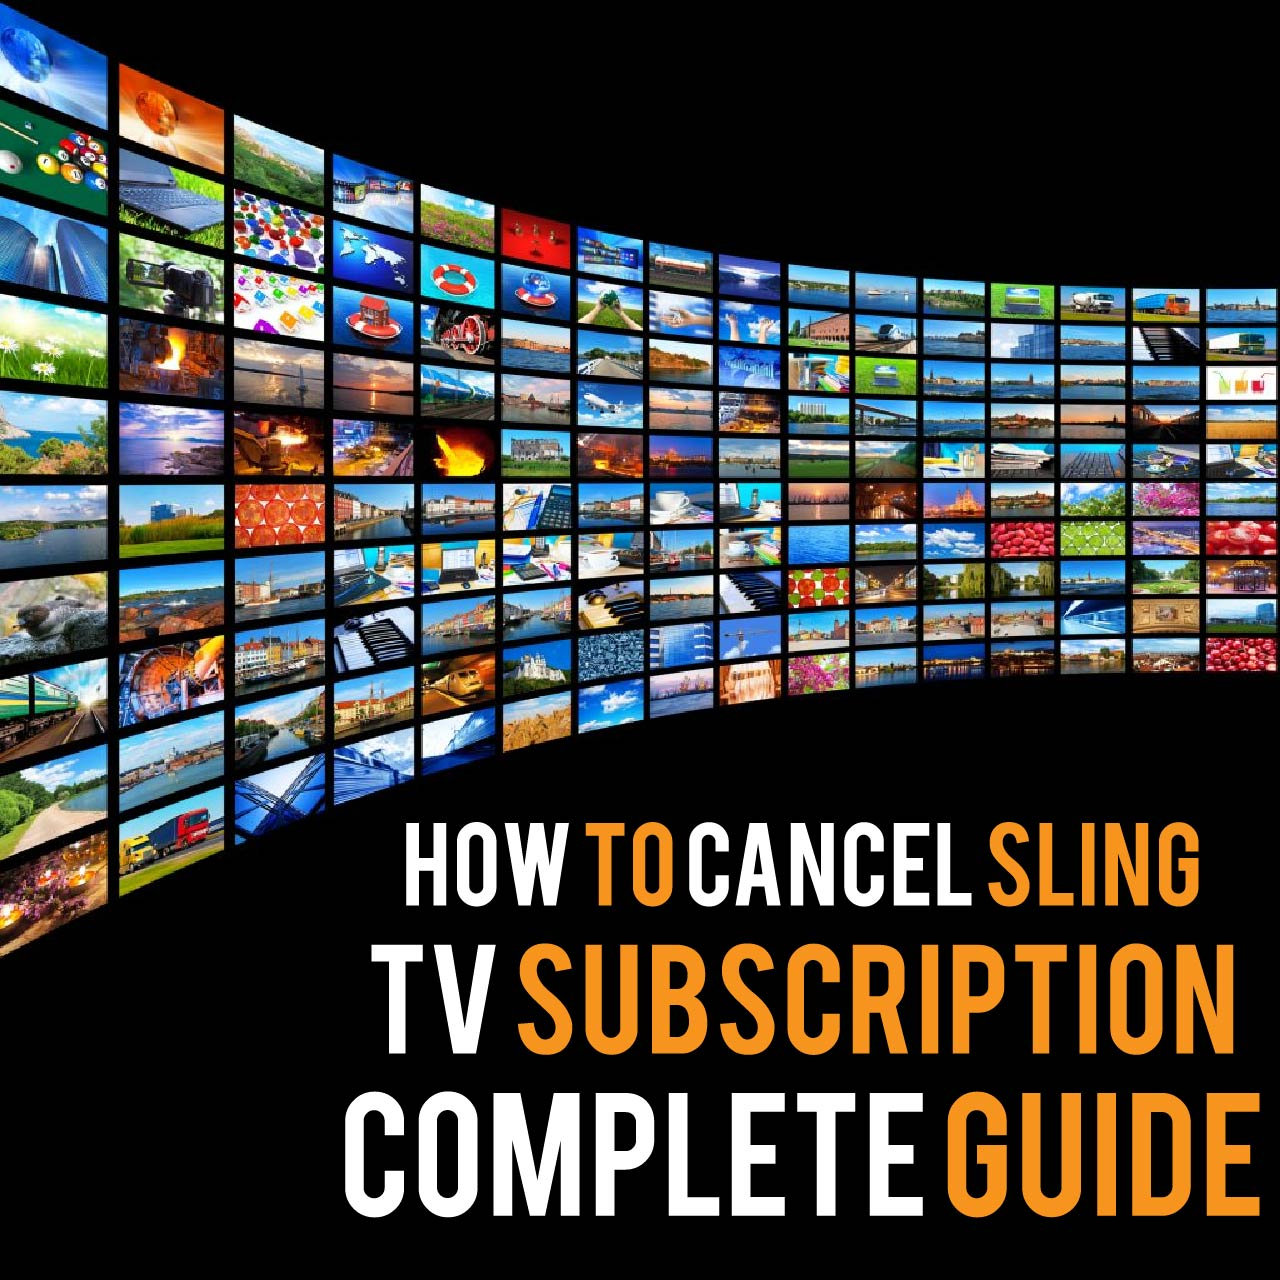 How To Cancel Sling Tv